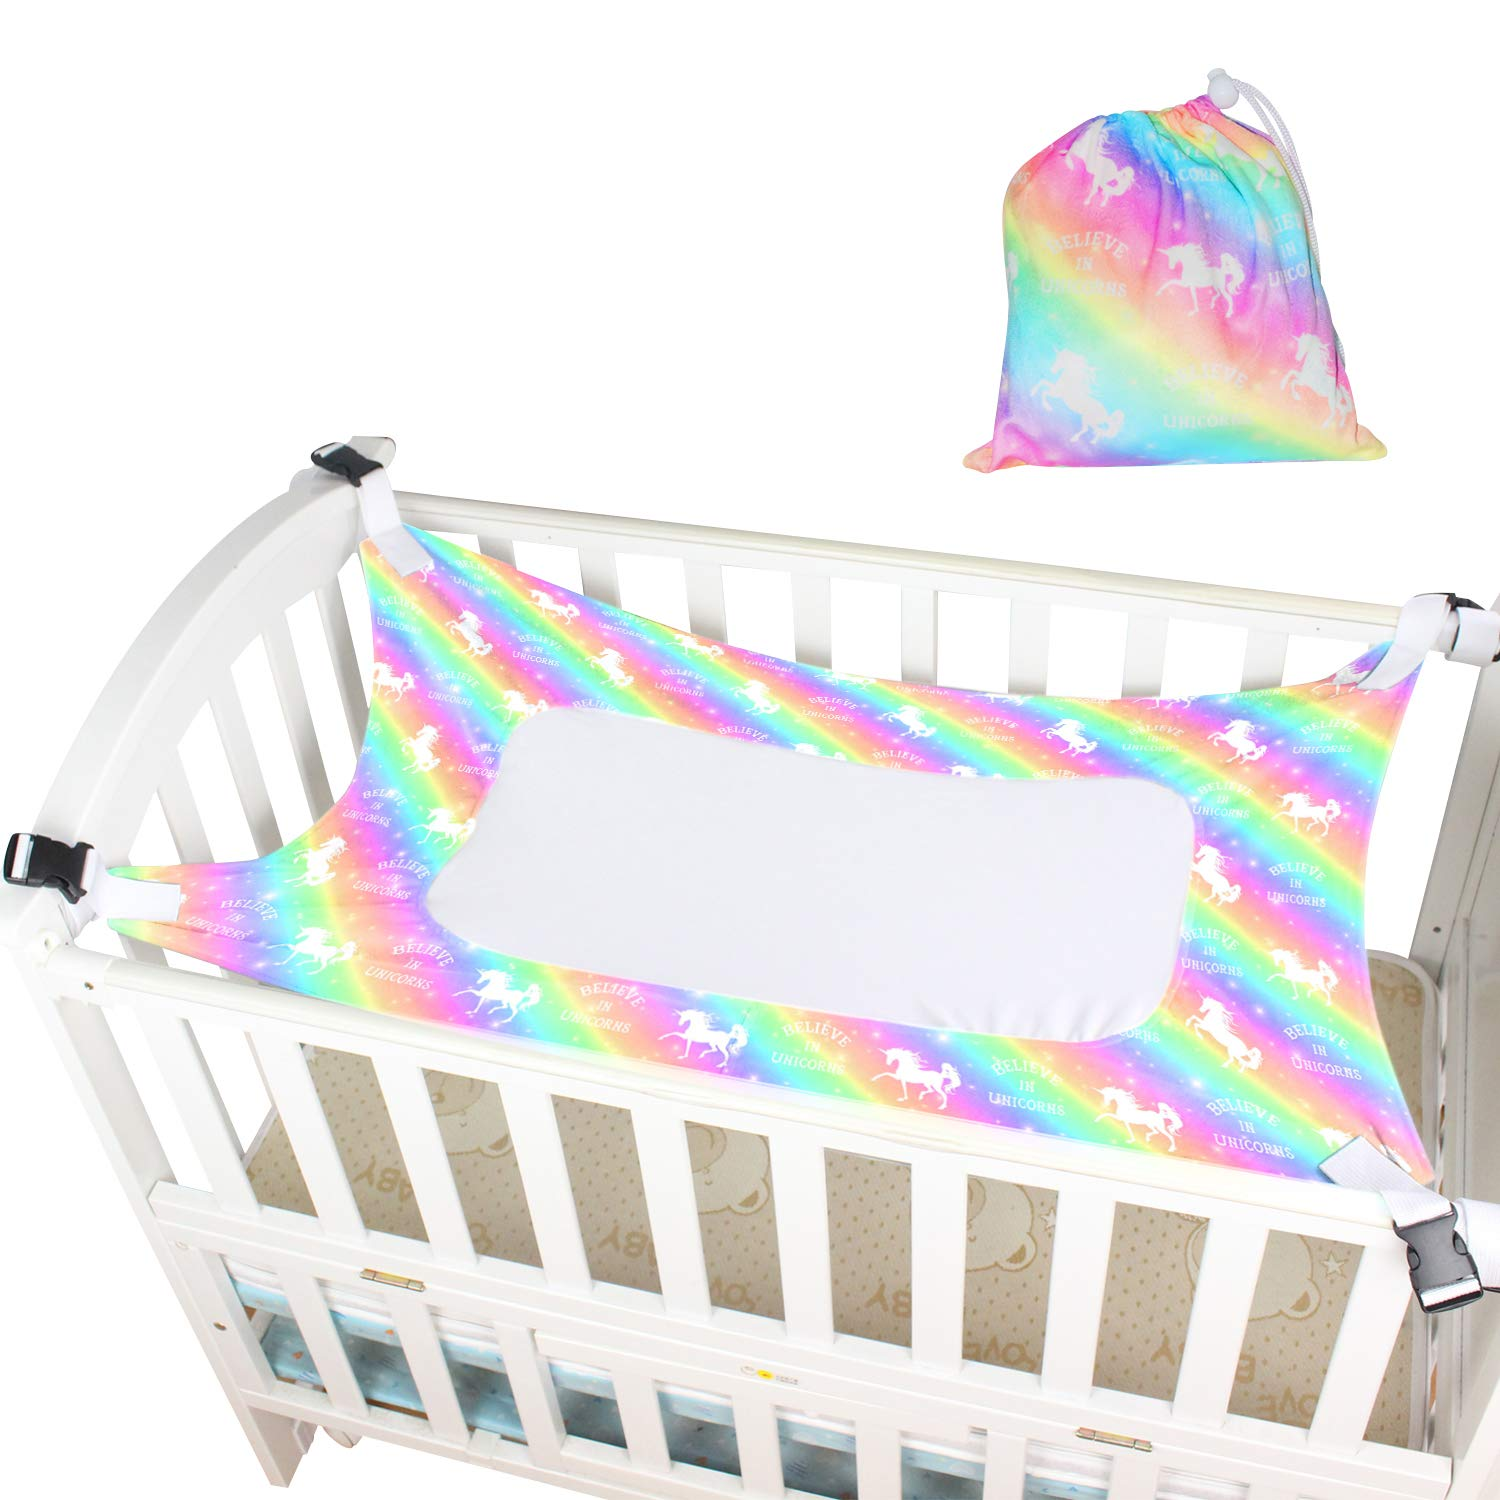 Sylfairy Baby Hammock for Crib, Mimics Womb, Breathable Supportive Mesh Newborn Bassinet Safe Buckle Hammocks Bed with Portable Gift Bag for Newborn Baby Shower Gifts Bassinet Hammock(Rainbow)